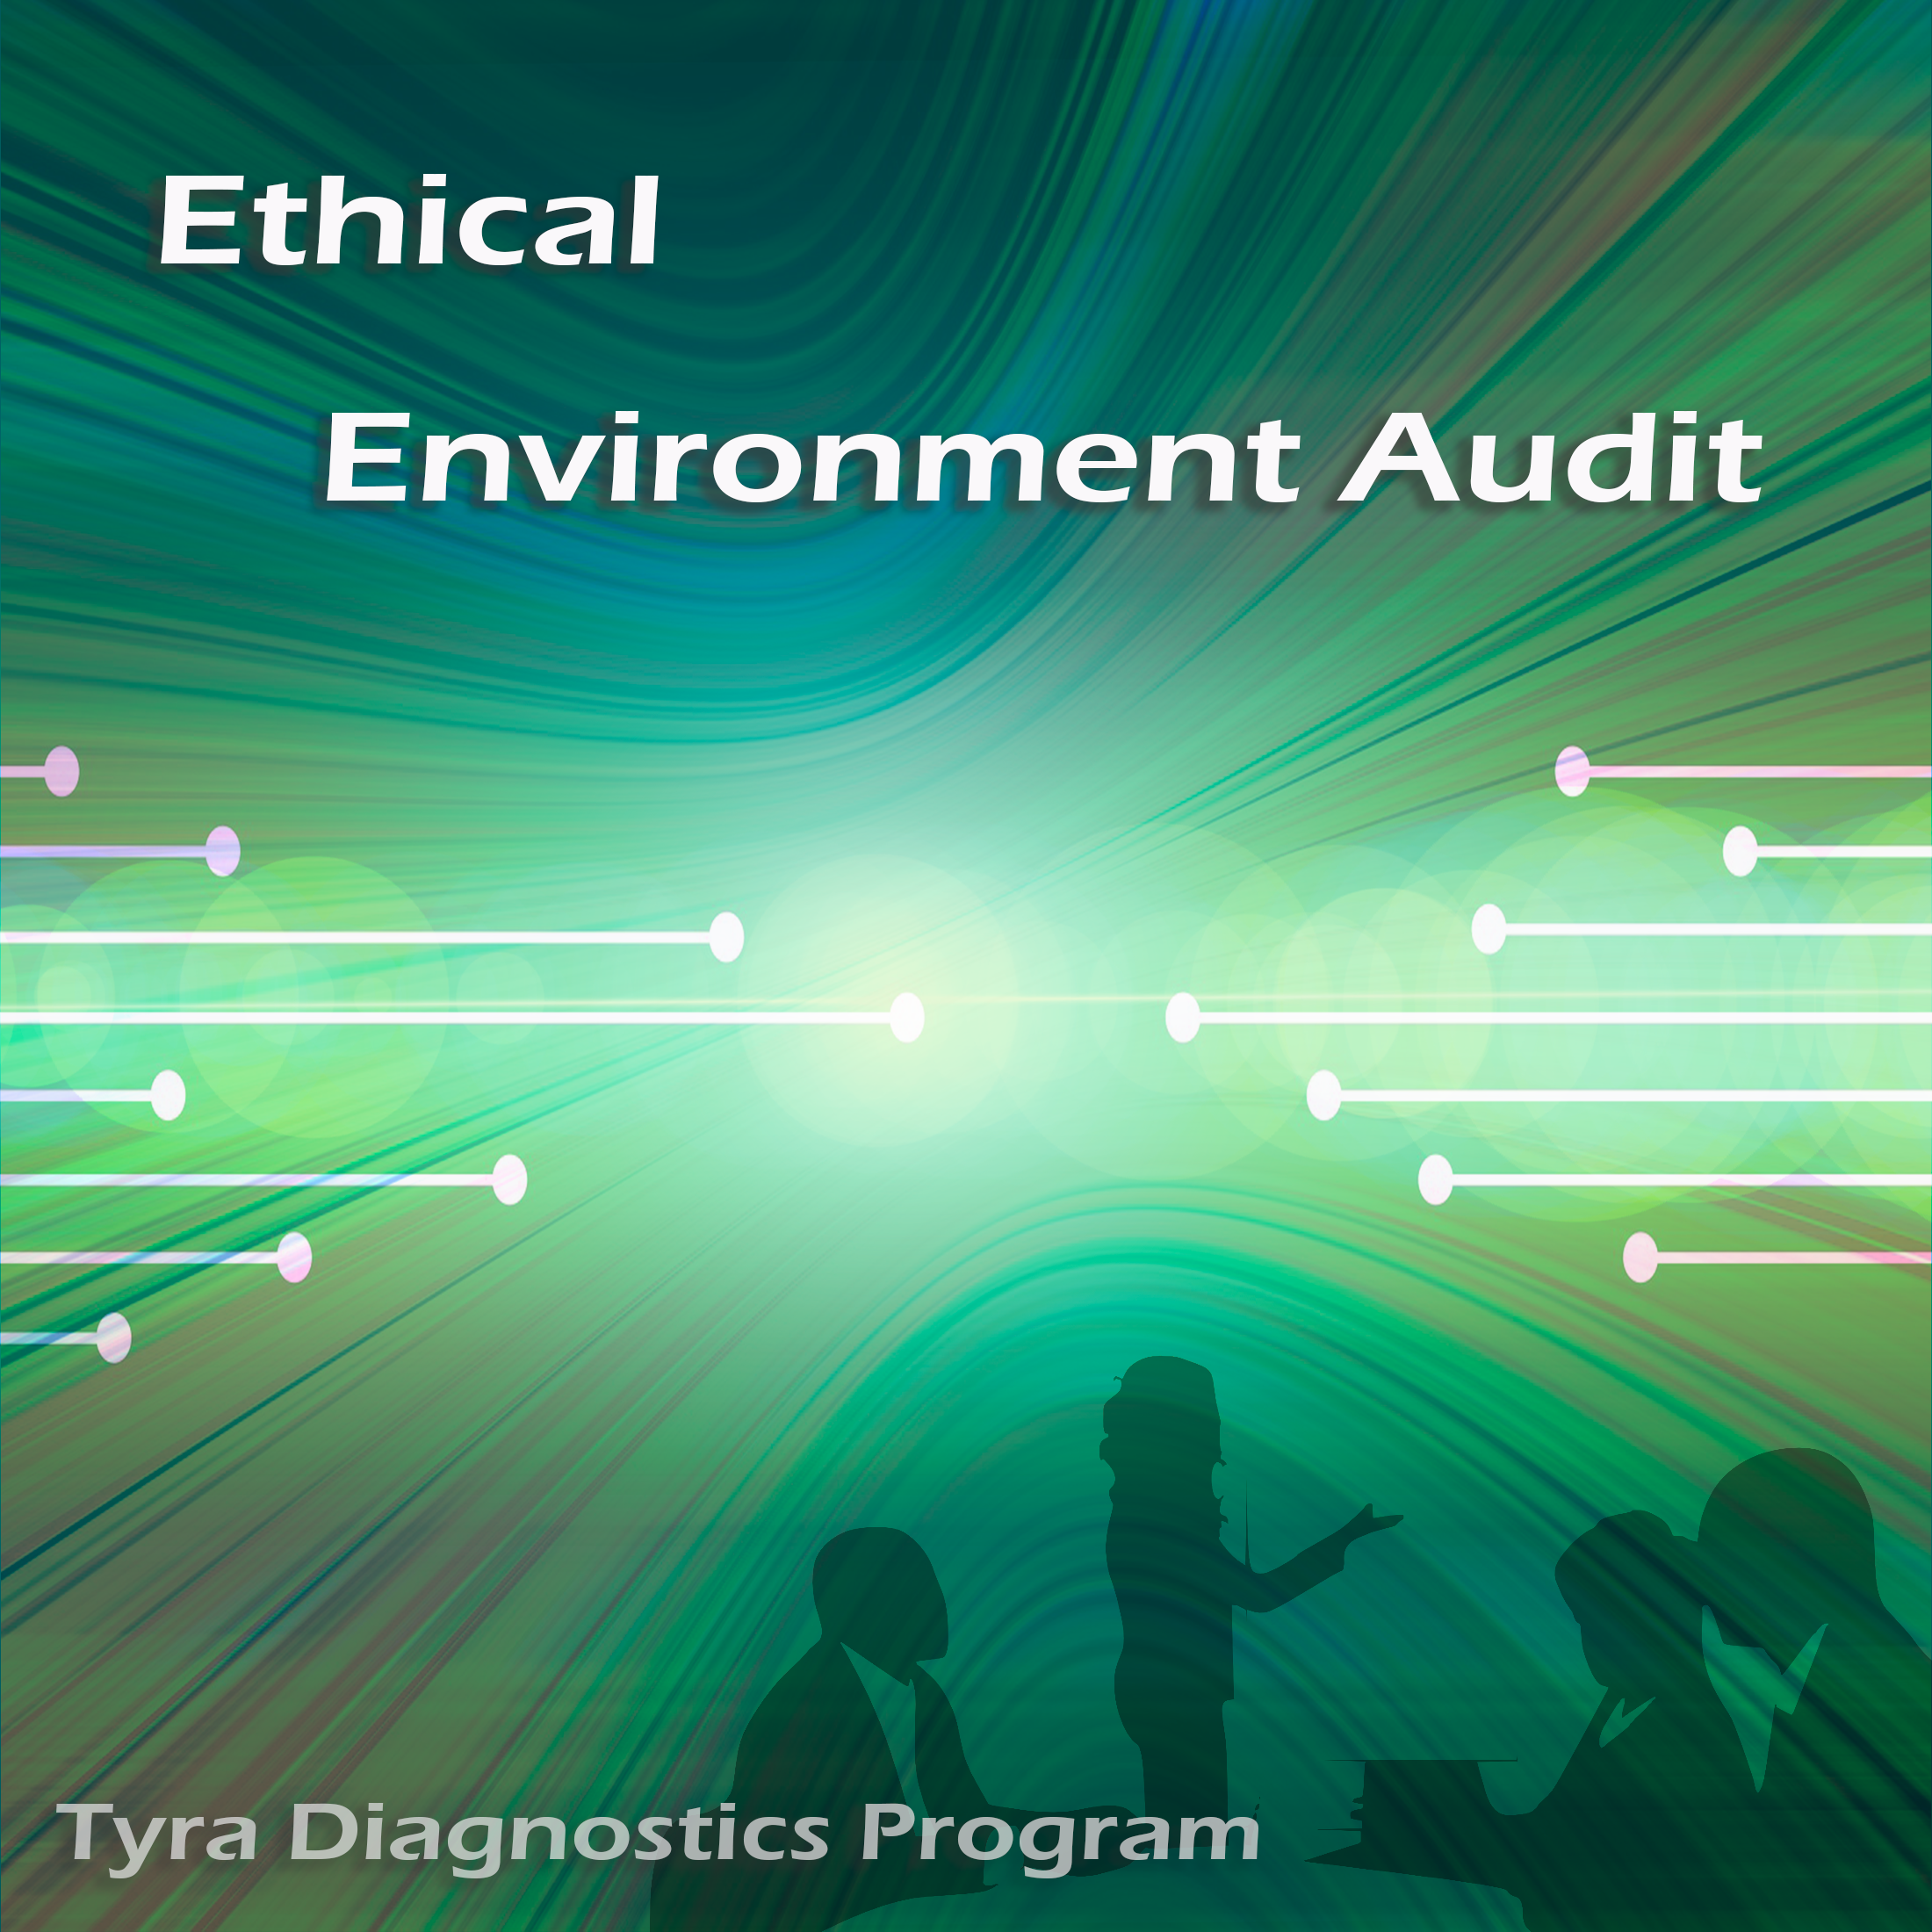 ethical-environment-audit-cover-web.png